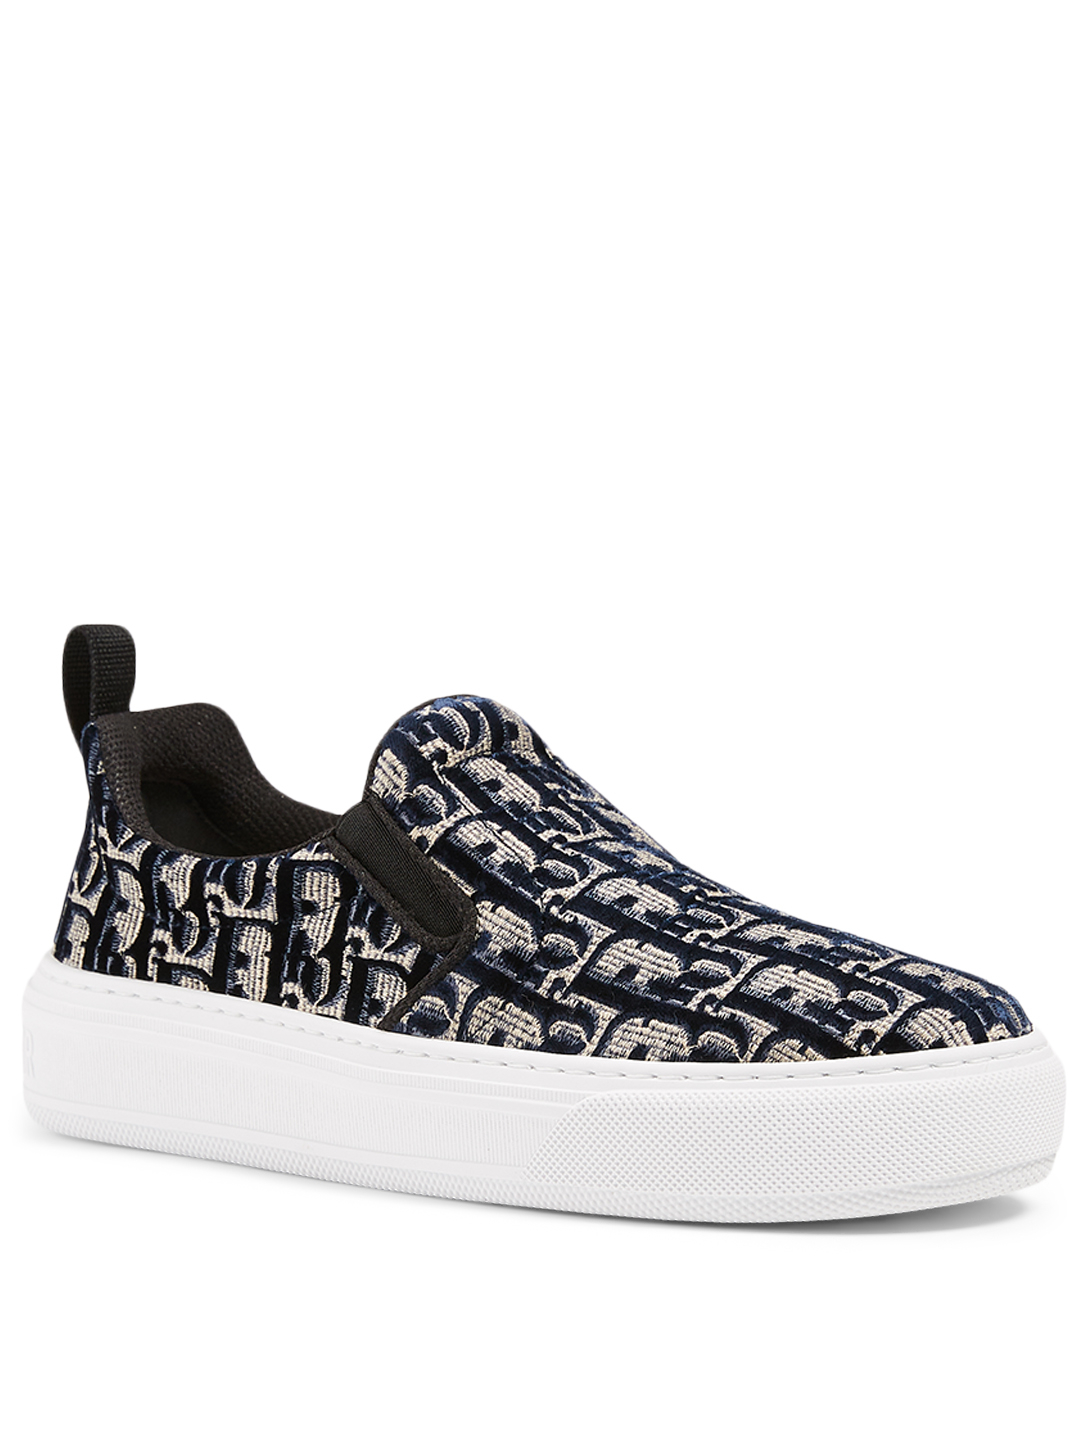 DIOR Dior Solar Velvet Oblique Embroidery Slip-On Sneakers Women's Blue